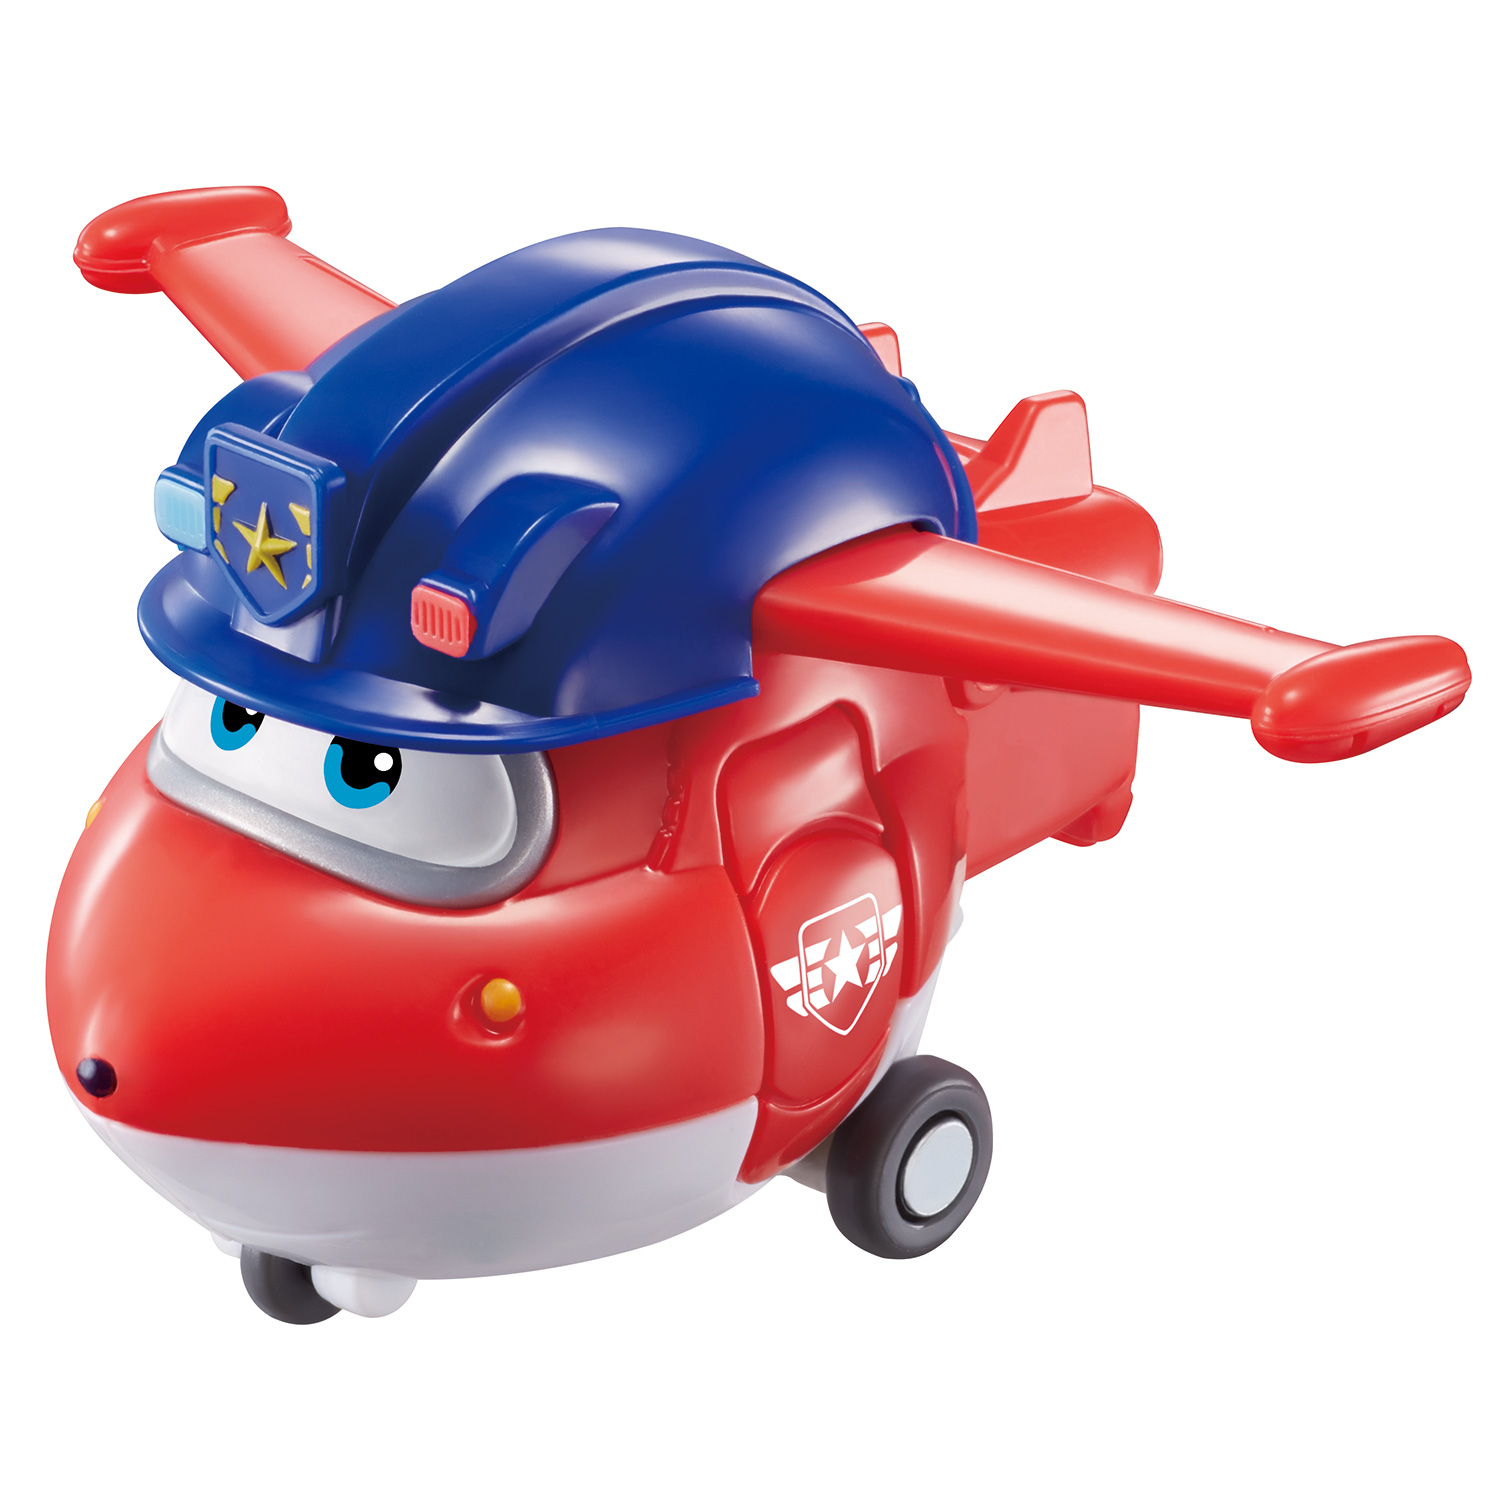 Купить Мини-трансформер Super Wings Джетт (команда Полиции), Super Wings - Супер Крылья